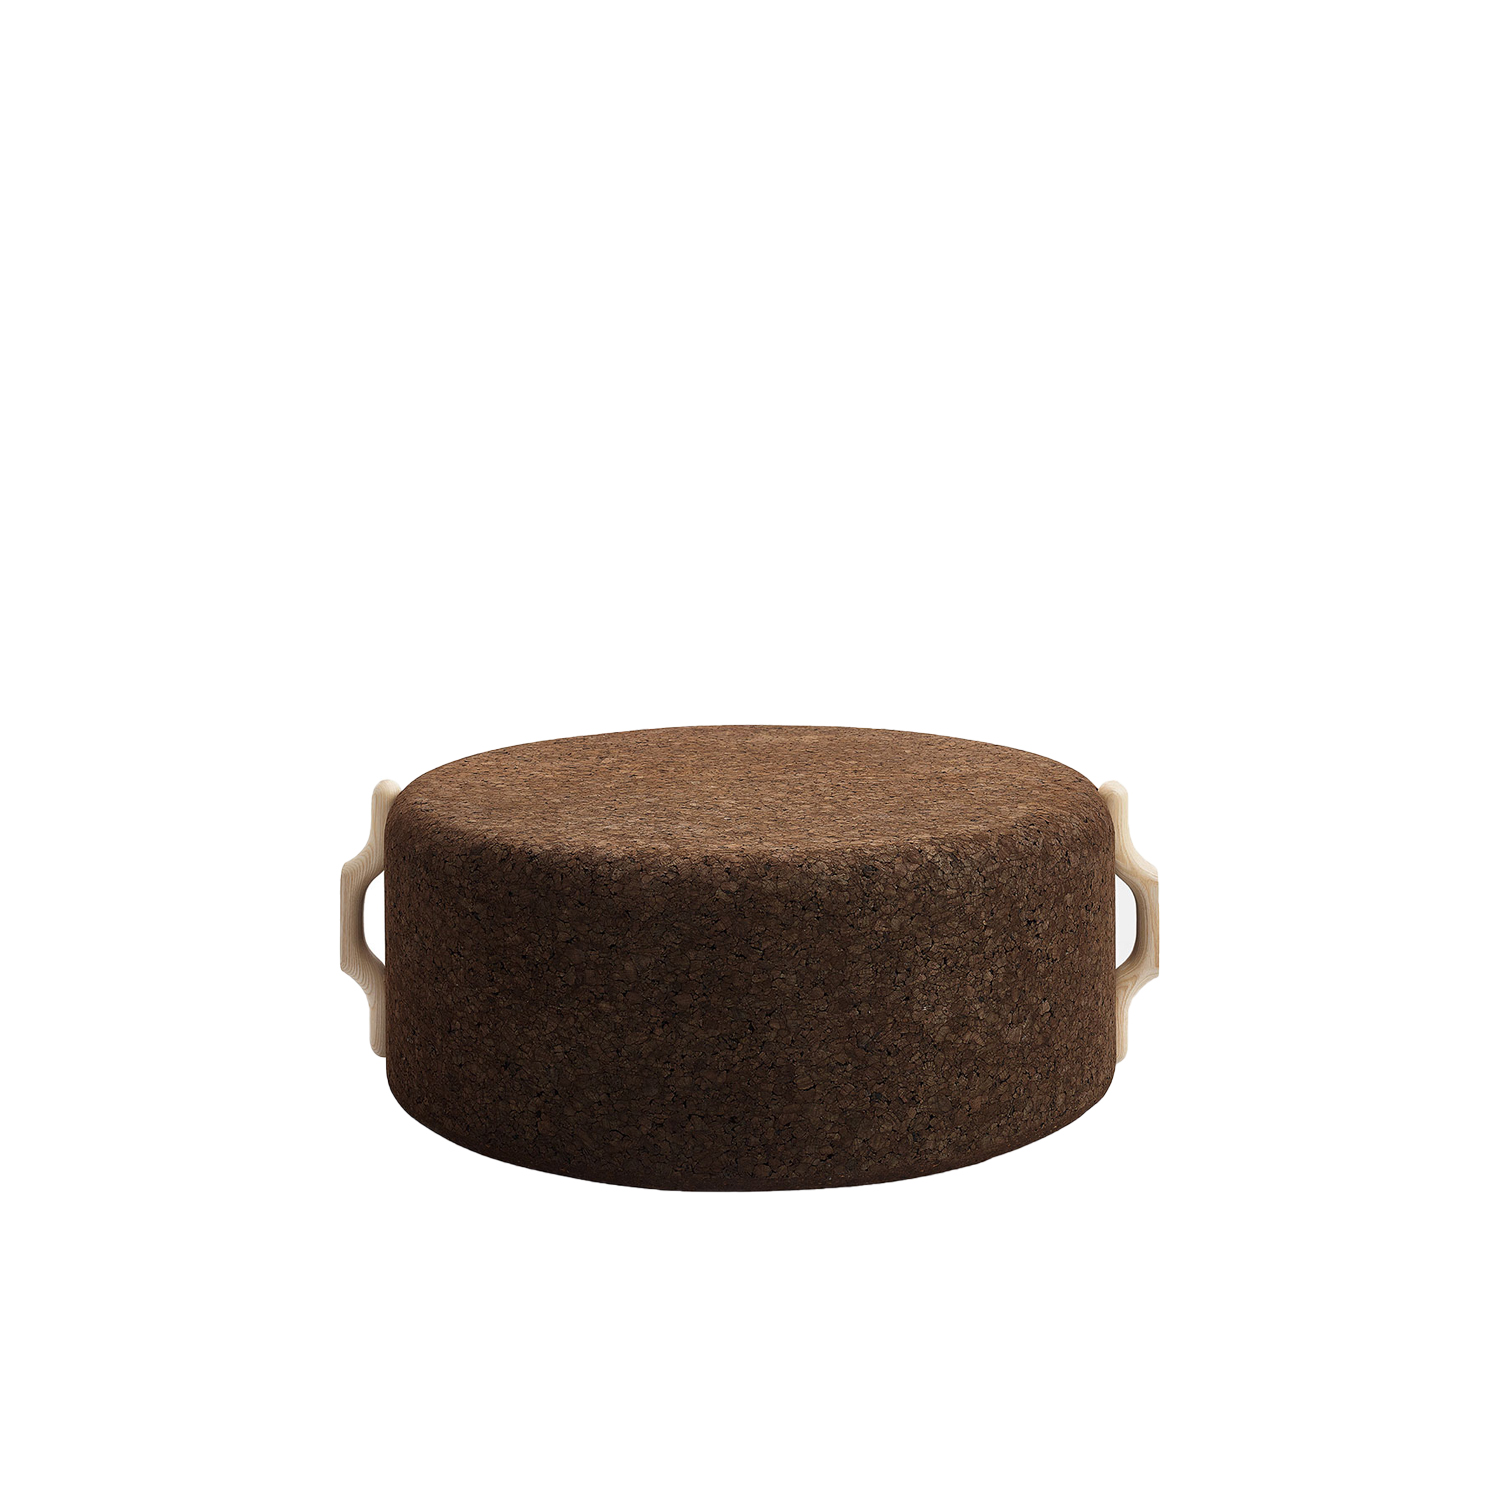 """Omega Large Stool 8 - It is only used cork of the branches (falca) for the manufacture of cork granules. These are block clusters in autoclave, being 100% natural process, without use of additives. Technology, developed by Sofalca, consists of injecting water vapour through the pallets that will expand and agglutinate with the resins of the cork itself. This """"cooking"""" gives also dark colour to the agglomerated cork, like chocolate. In the production of steam I used biomass, obtained on milling and cleaning the falca, what makes it truly ecological production and without waste, 95% energy self-sufficient. As a super-material, cork offers so many advantages, because in addition to its excellent thermic, acoustic insulation and anti vibration characteristic, it is also a CO2 sink playing a key-role in the environment. 